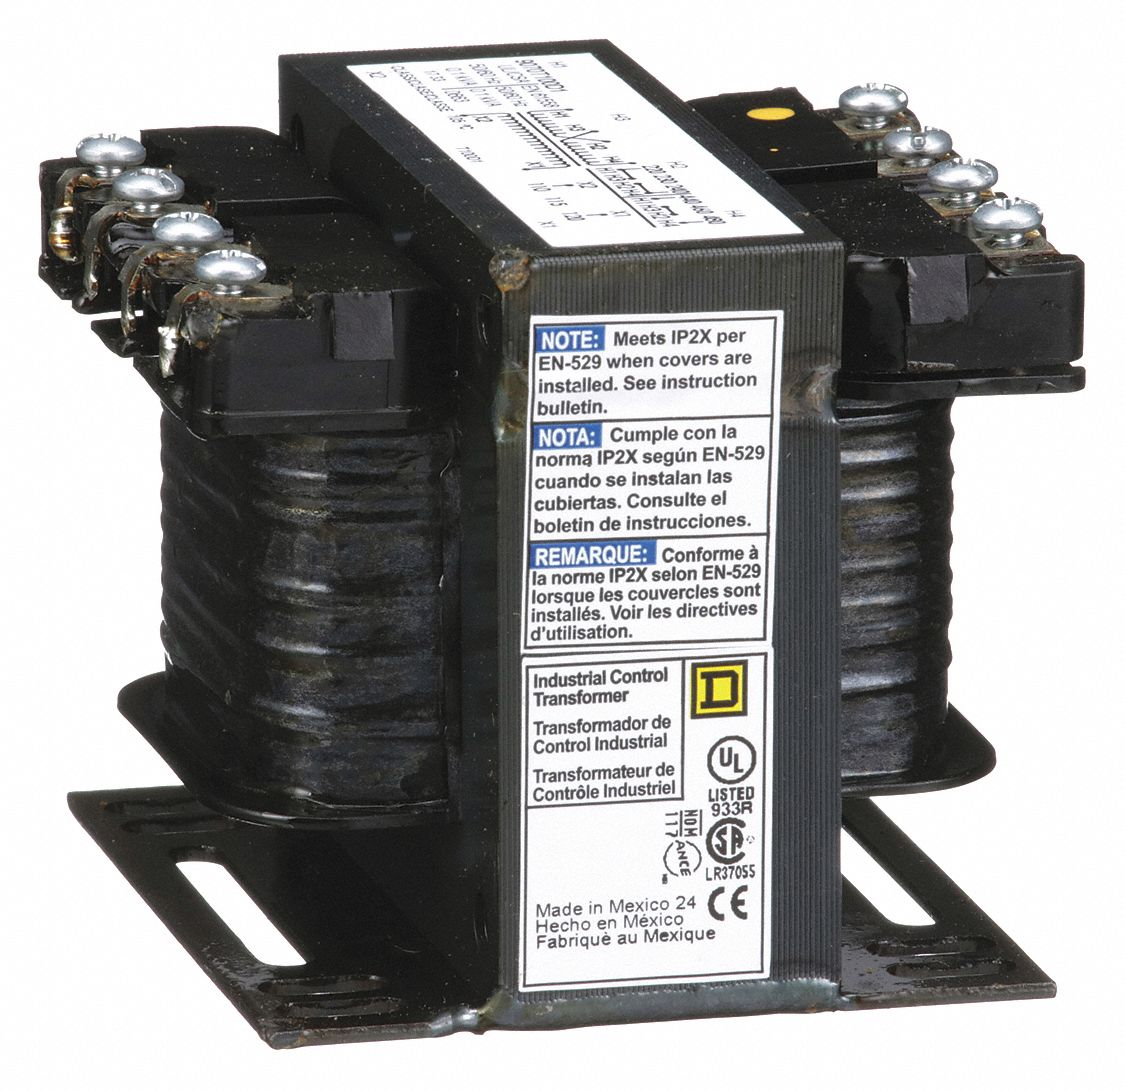 small resolution of square d control transformer input voltage 240vac 480vac output square d transformer wiring further dayton electric motor wiring